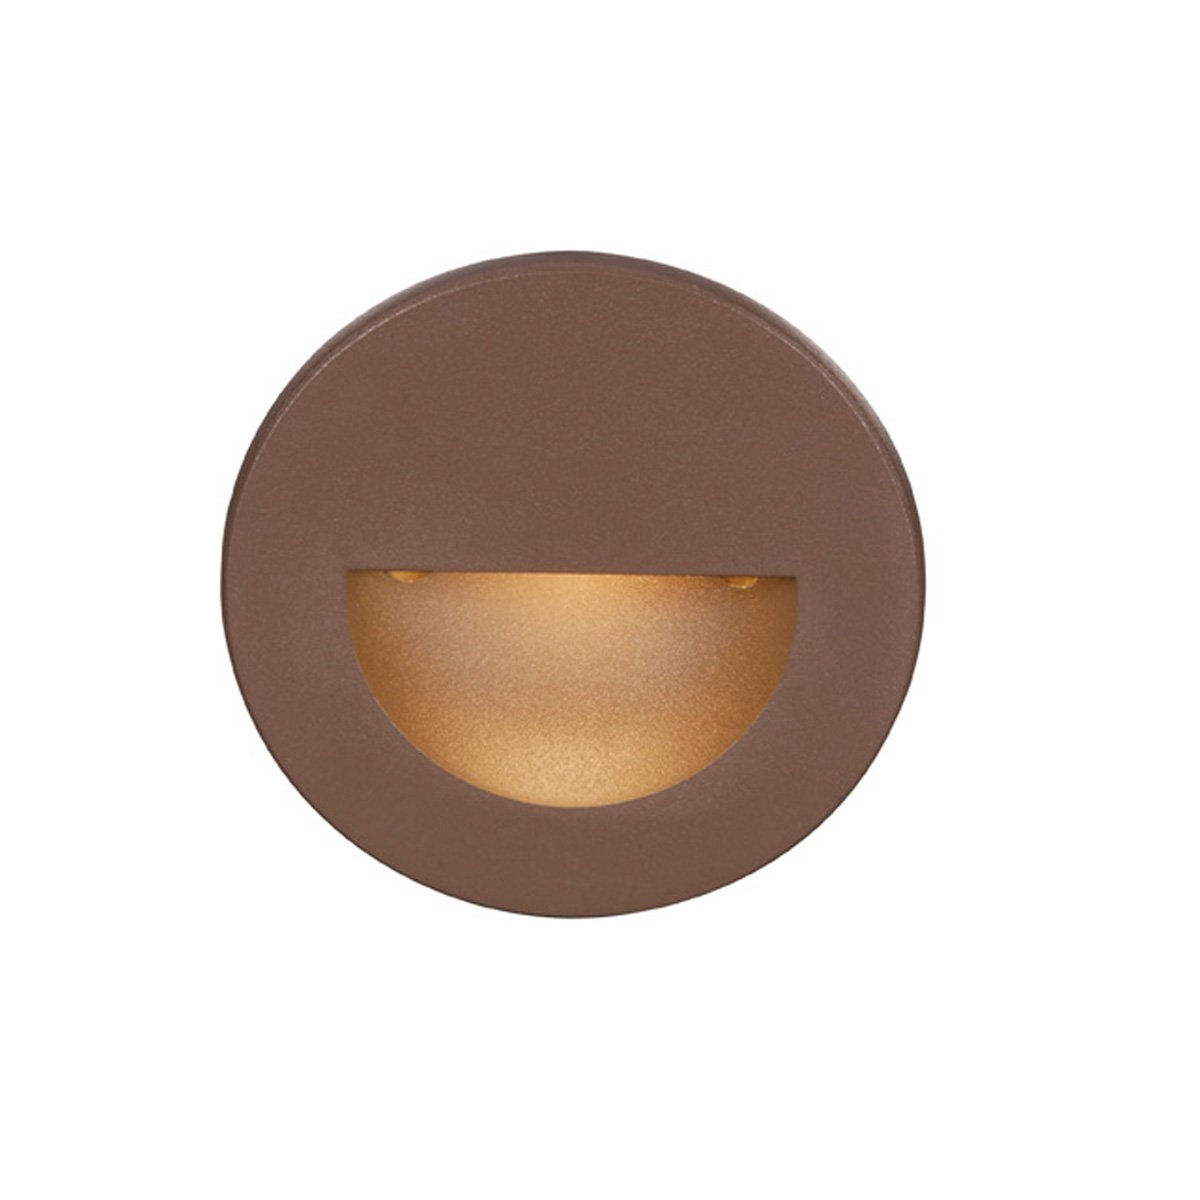 WAC Lighting WL-LED300-C-BZ Circular Scoop 4W 120V LED Step Light with White Lens, Bronze Finish by WAC Lighting